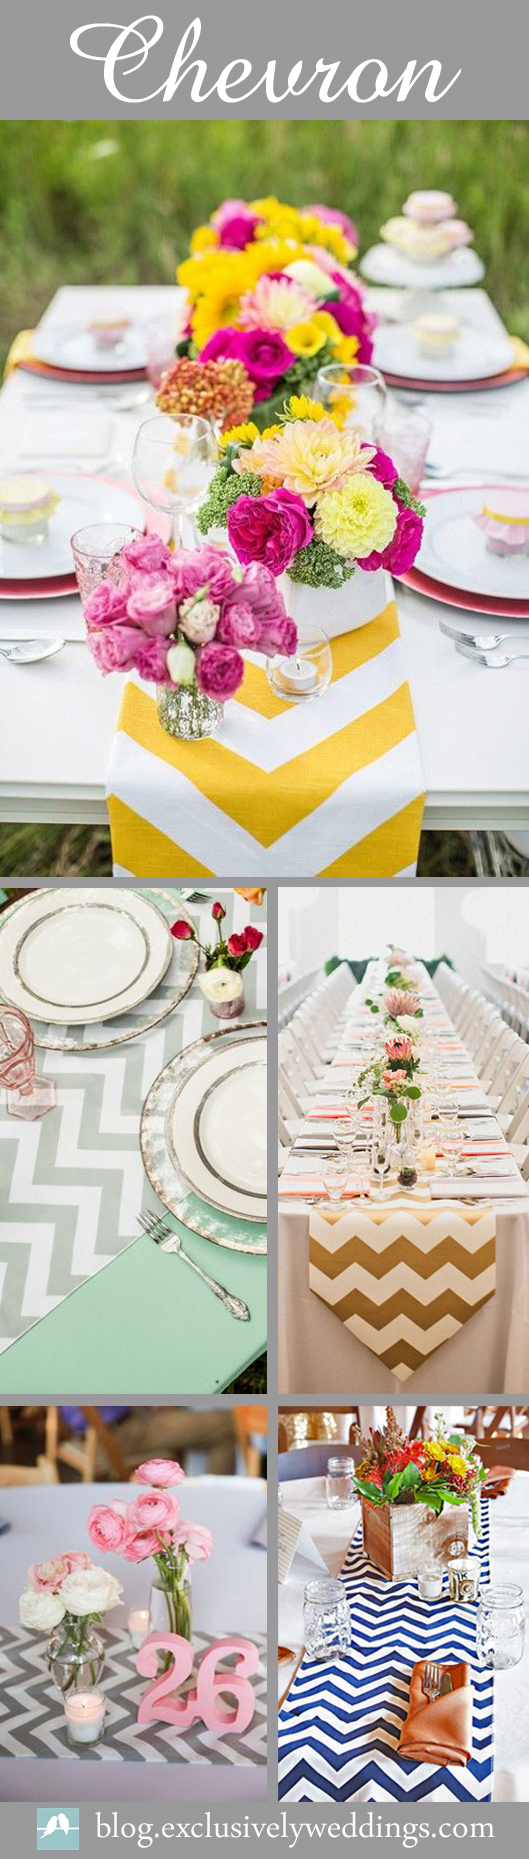 Chevron-Table-Decor-Ideas